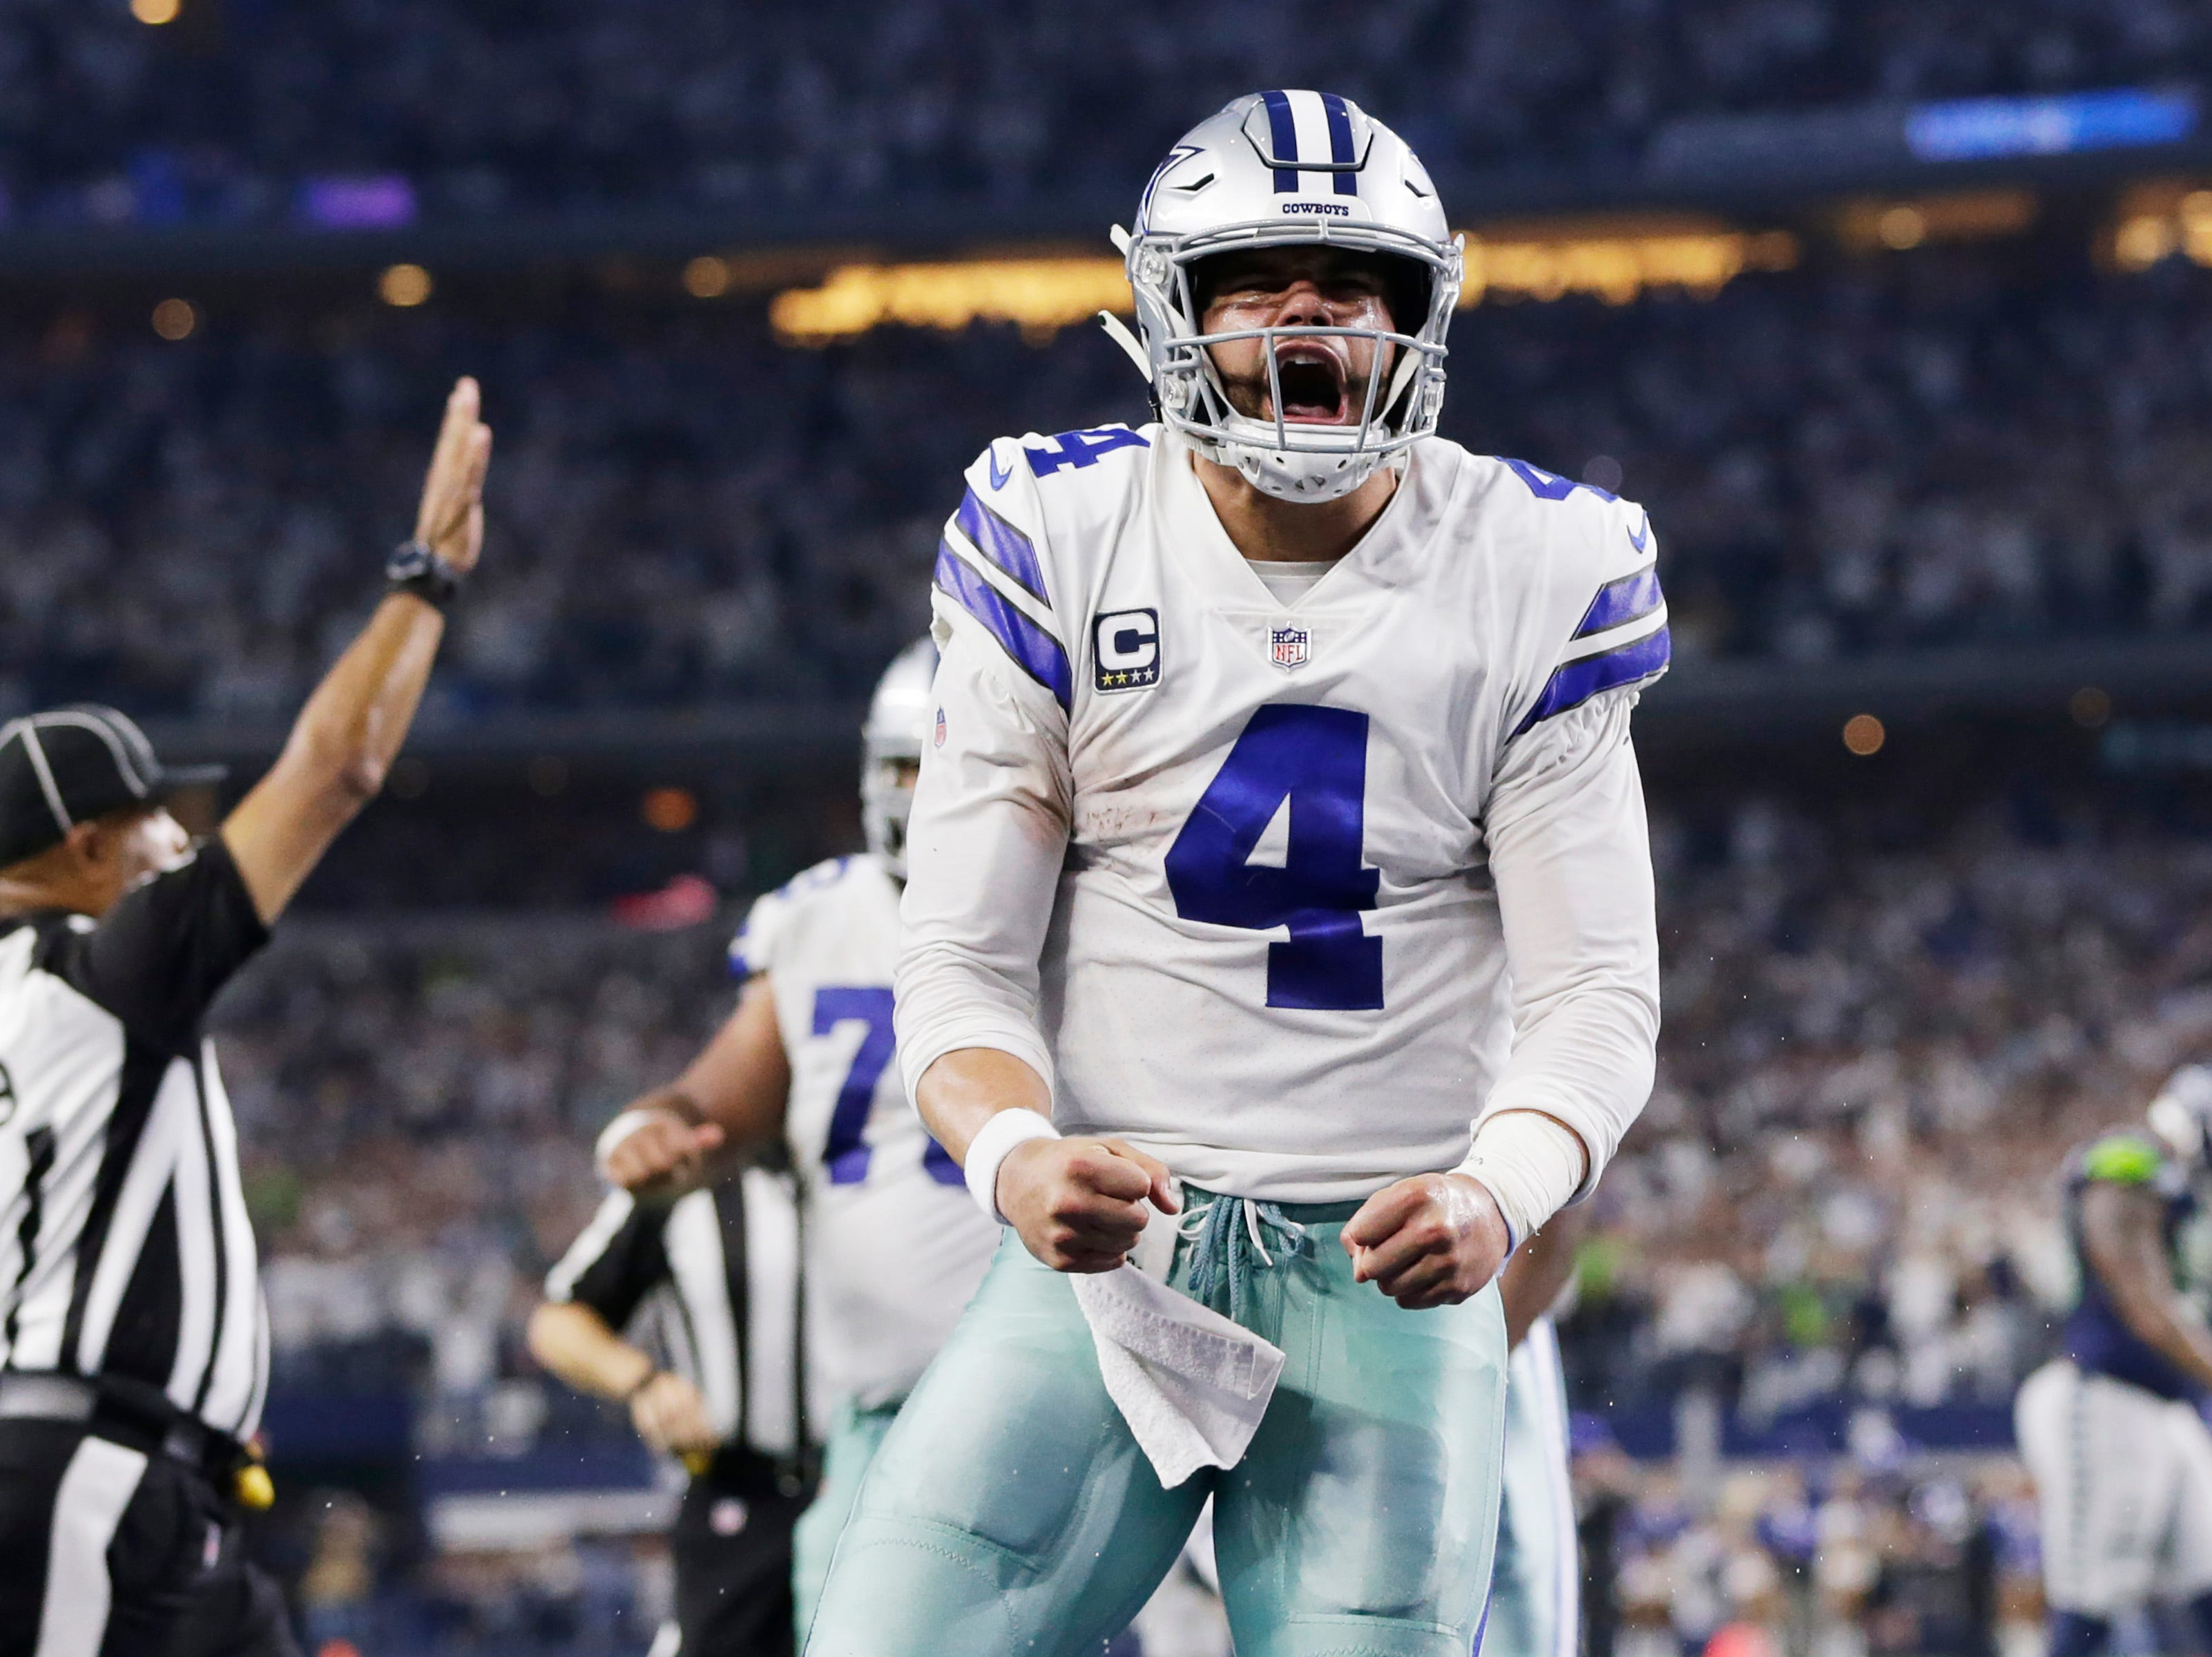 Dallas Cowboys quarterback Dak Prescott (4) reacts to running to the 1-yard line in the fourth quarter against the Seattle Seahawks at AT&T Stadium. Prescott would punch it in himself as the Cowboys went on to a 24-22 win.